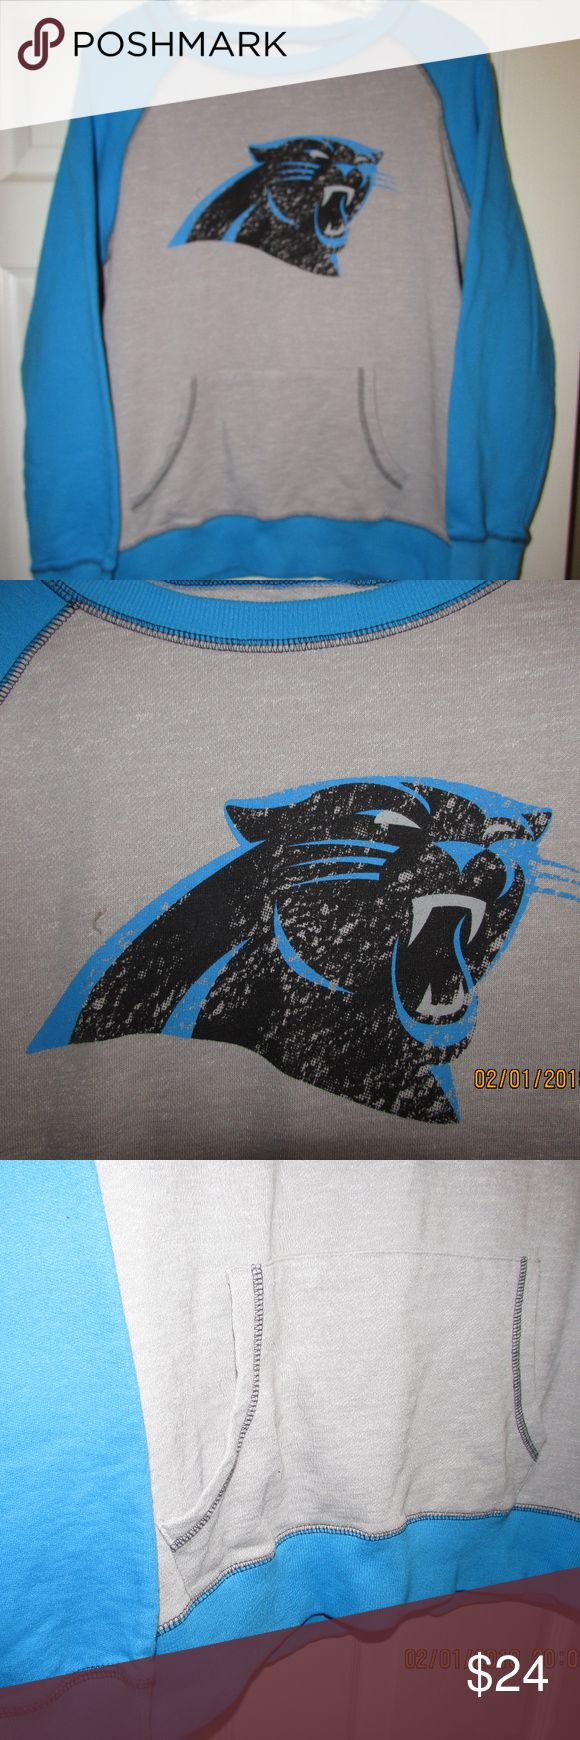 Carolina Panthers NFL Majestic XL Sweater EUC Very Nice Distressed Carolina Panthers NFL Majestic XL Sweater, with 2 front pockets. Excellent Used Condition EUC Majestic Jackets & Coats Lightweight & Shirt Jackets